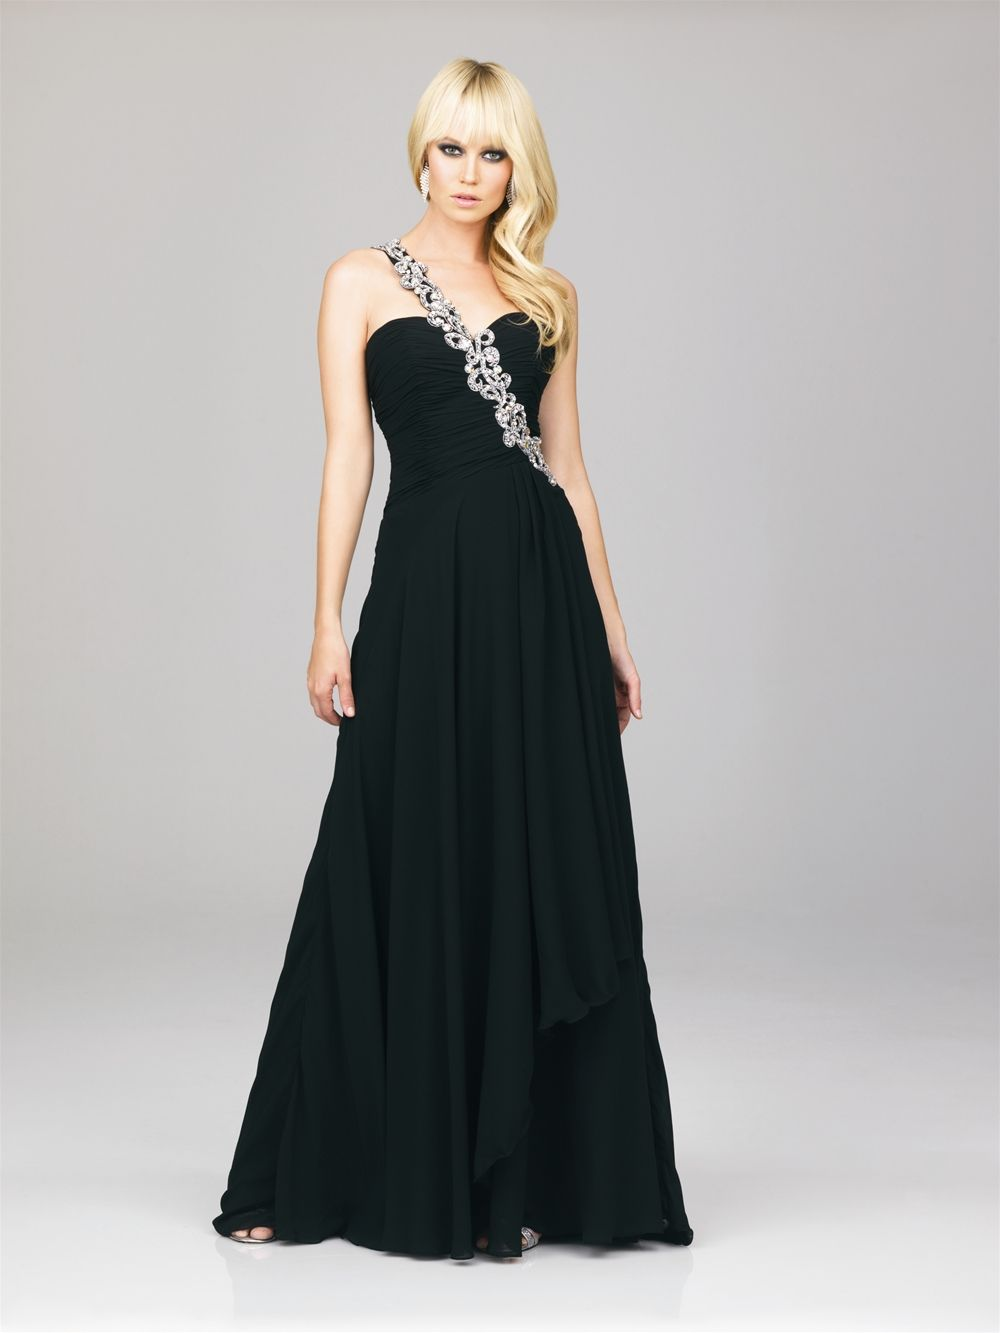 I have no idea why i am drawn to black gowns pinterest dream